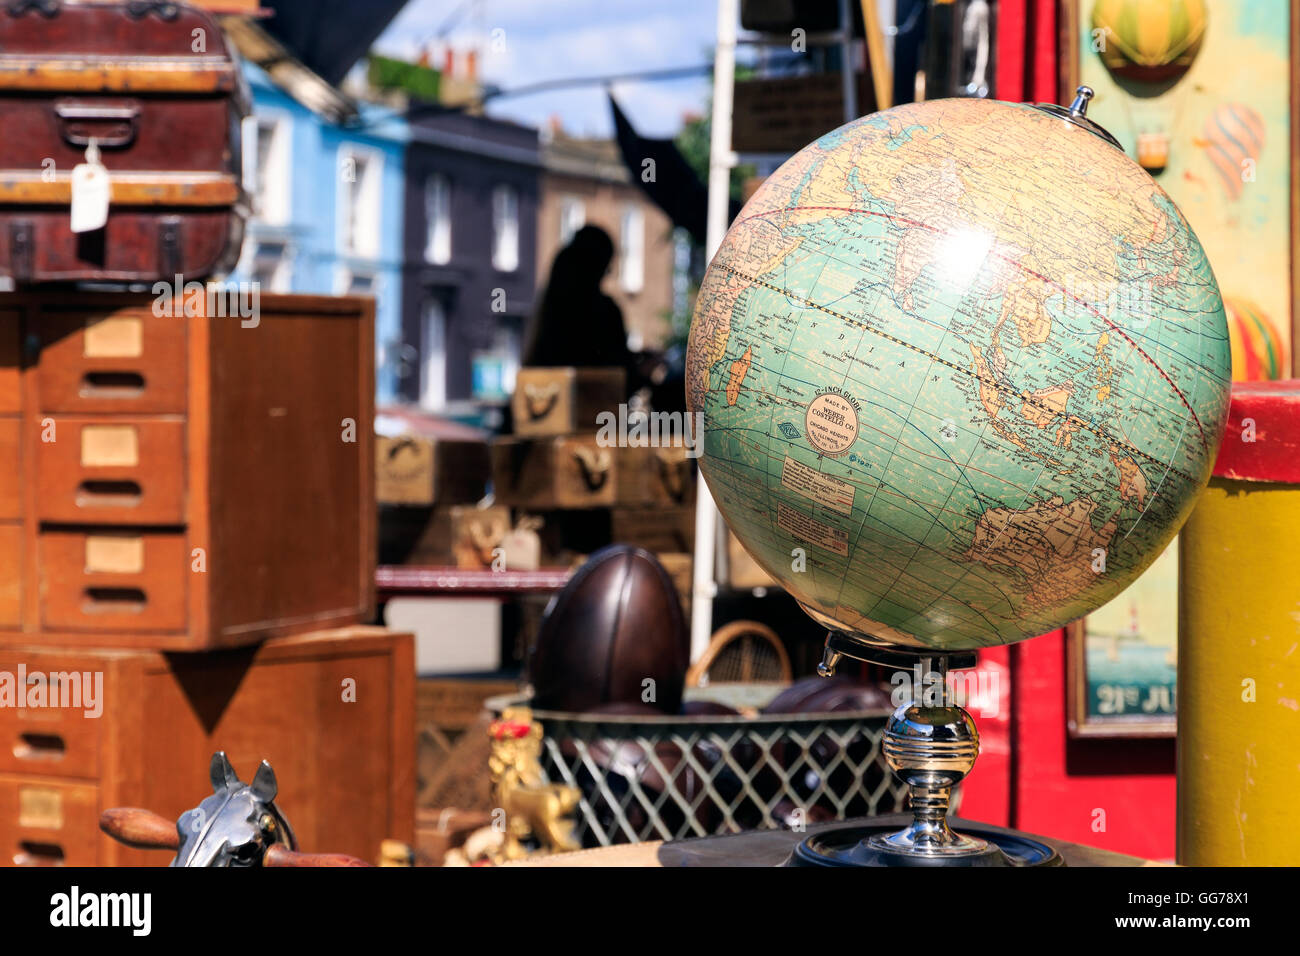 Vintage Globe displayed outside an antique shop at Portobello Road Market in Notting Hill - Stock Image